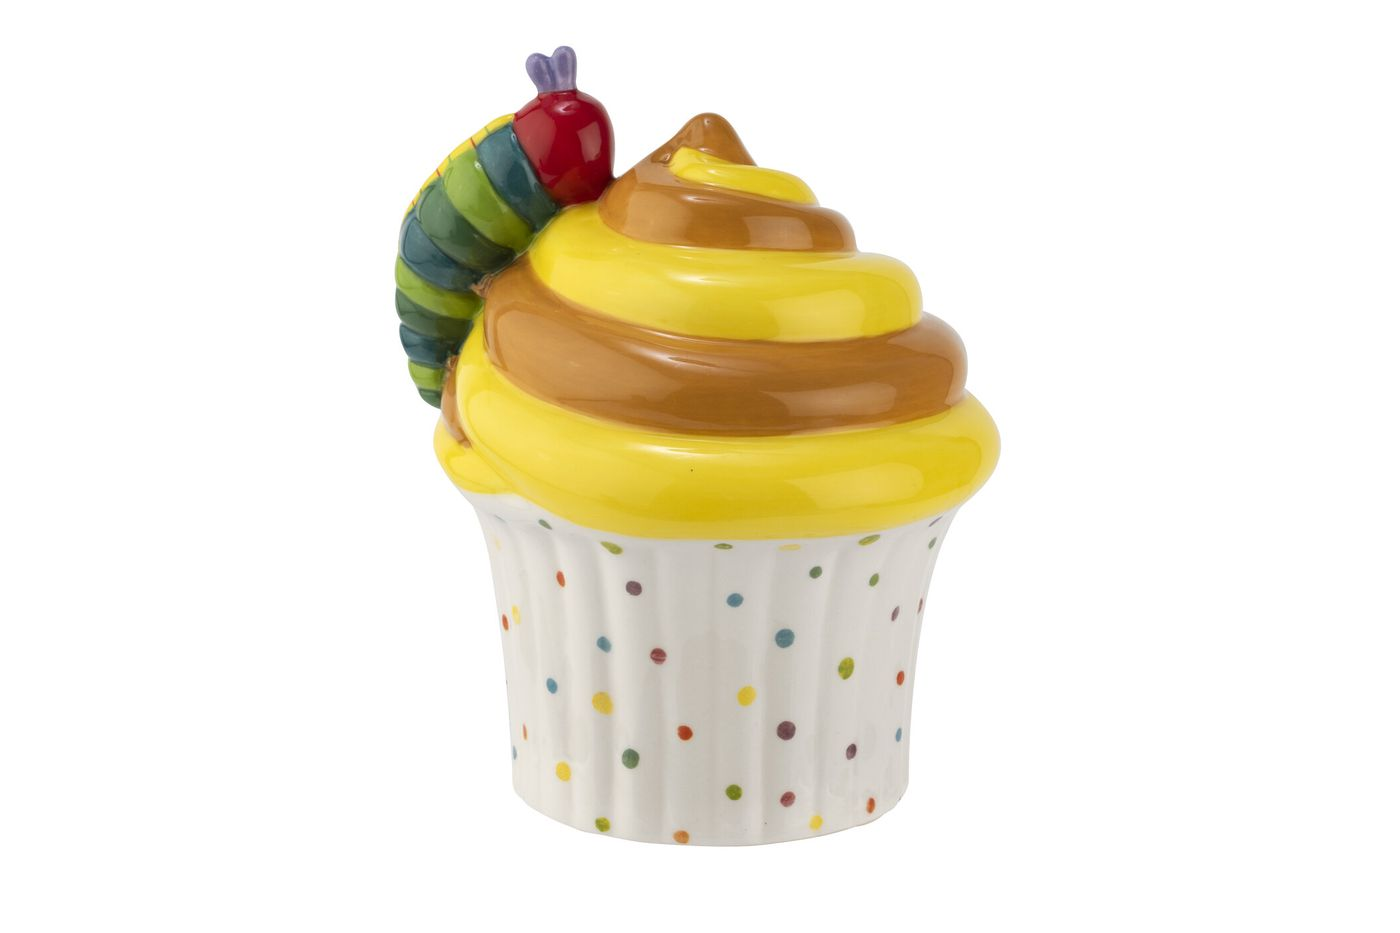 Portmeirion The Very Hungry Caterpillar by Eric Carle Money Box Cupcake thumb 3